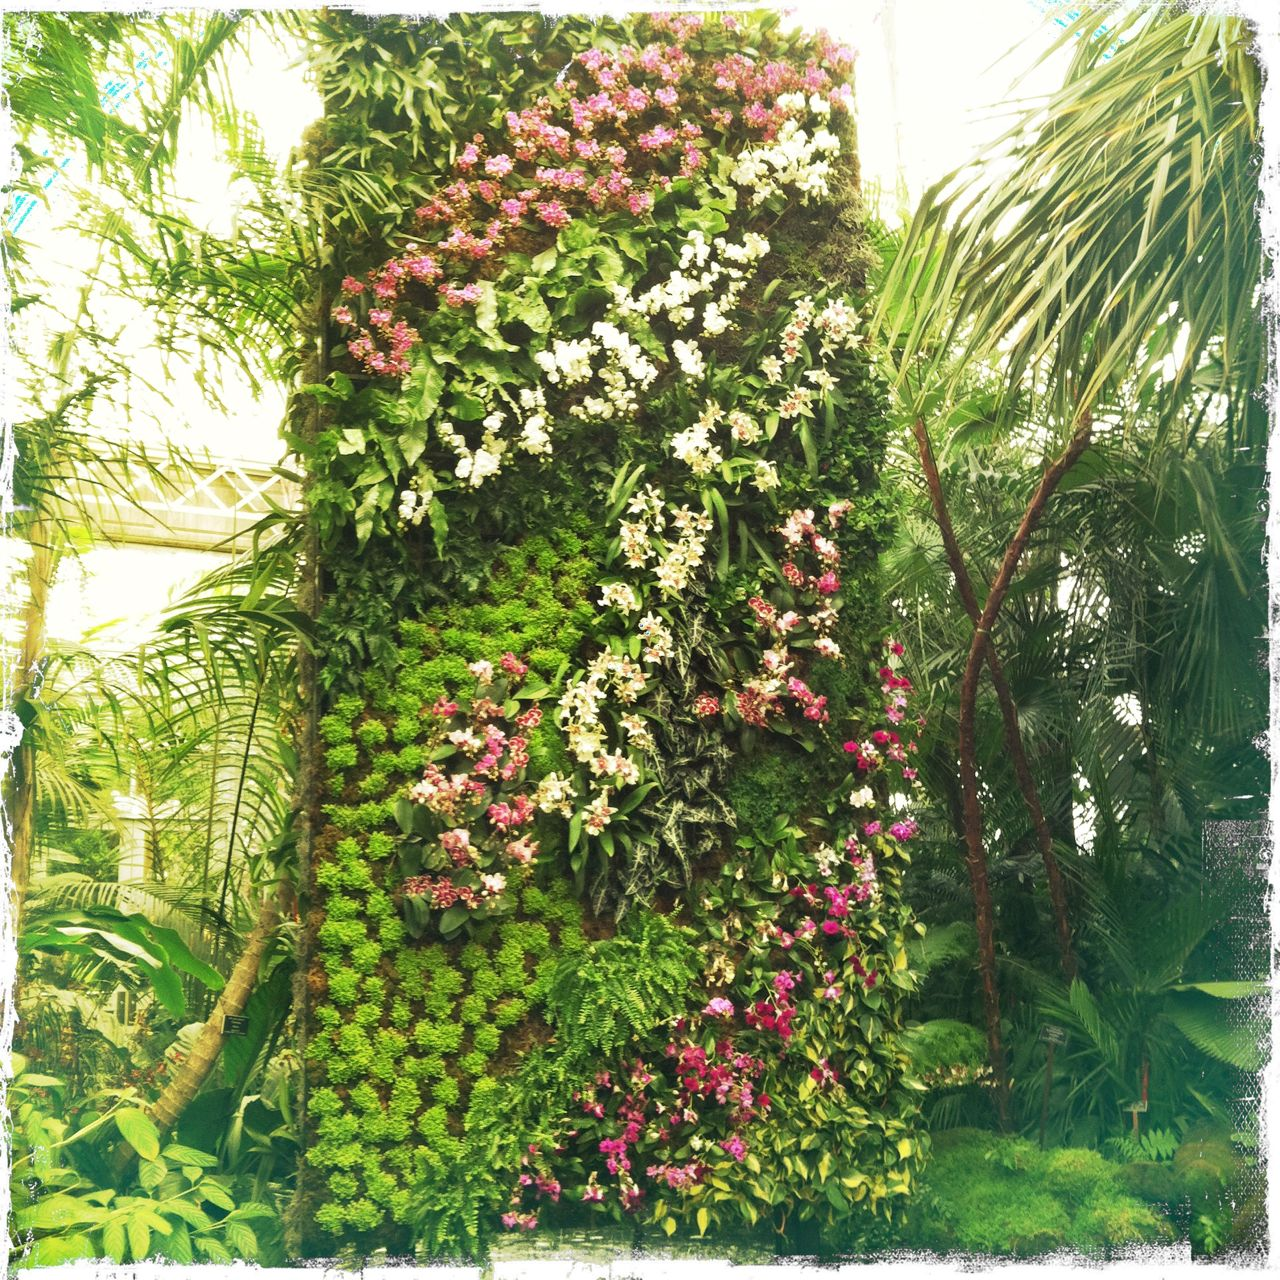 Vertical Garden - Photo by Monique Hartl